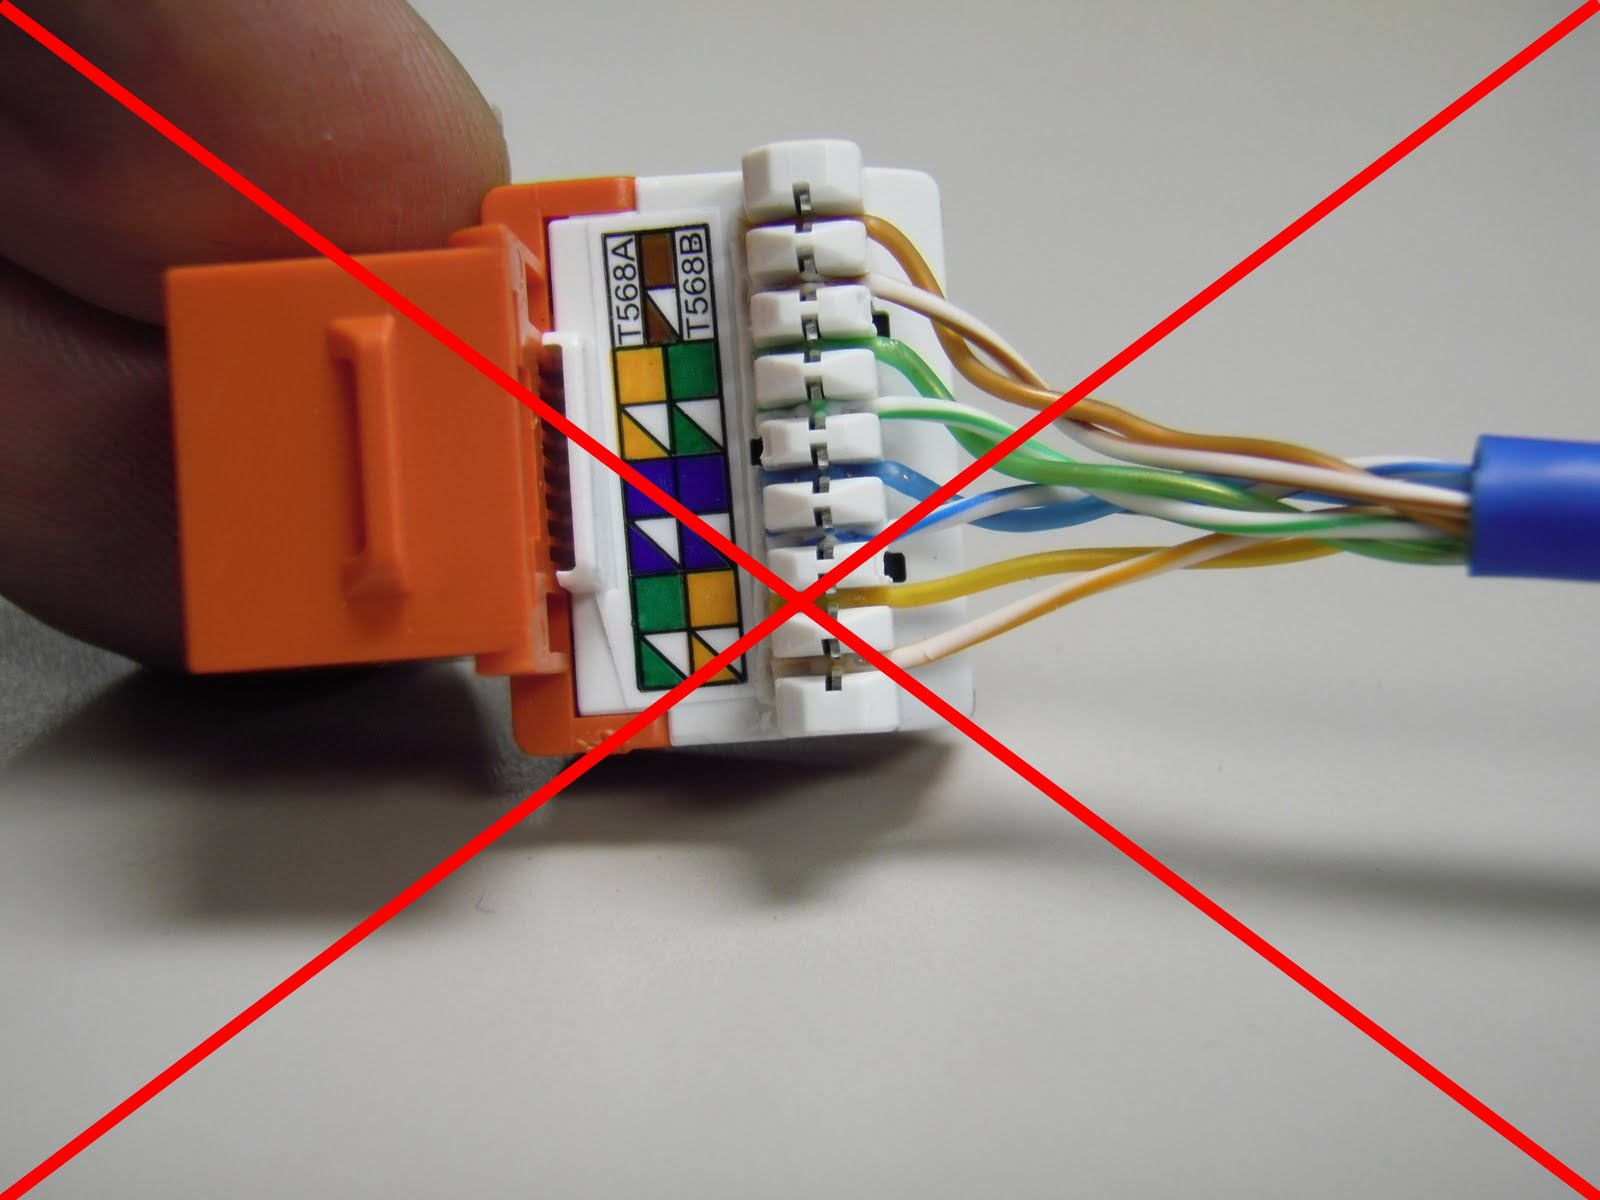 CAT5E+ER+JACK+PUNCHED+WRONG+RED+X the trench how to punch down cat5e cat6 keystone jacks